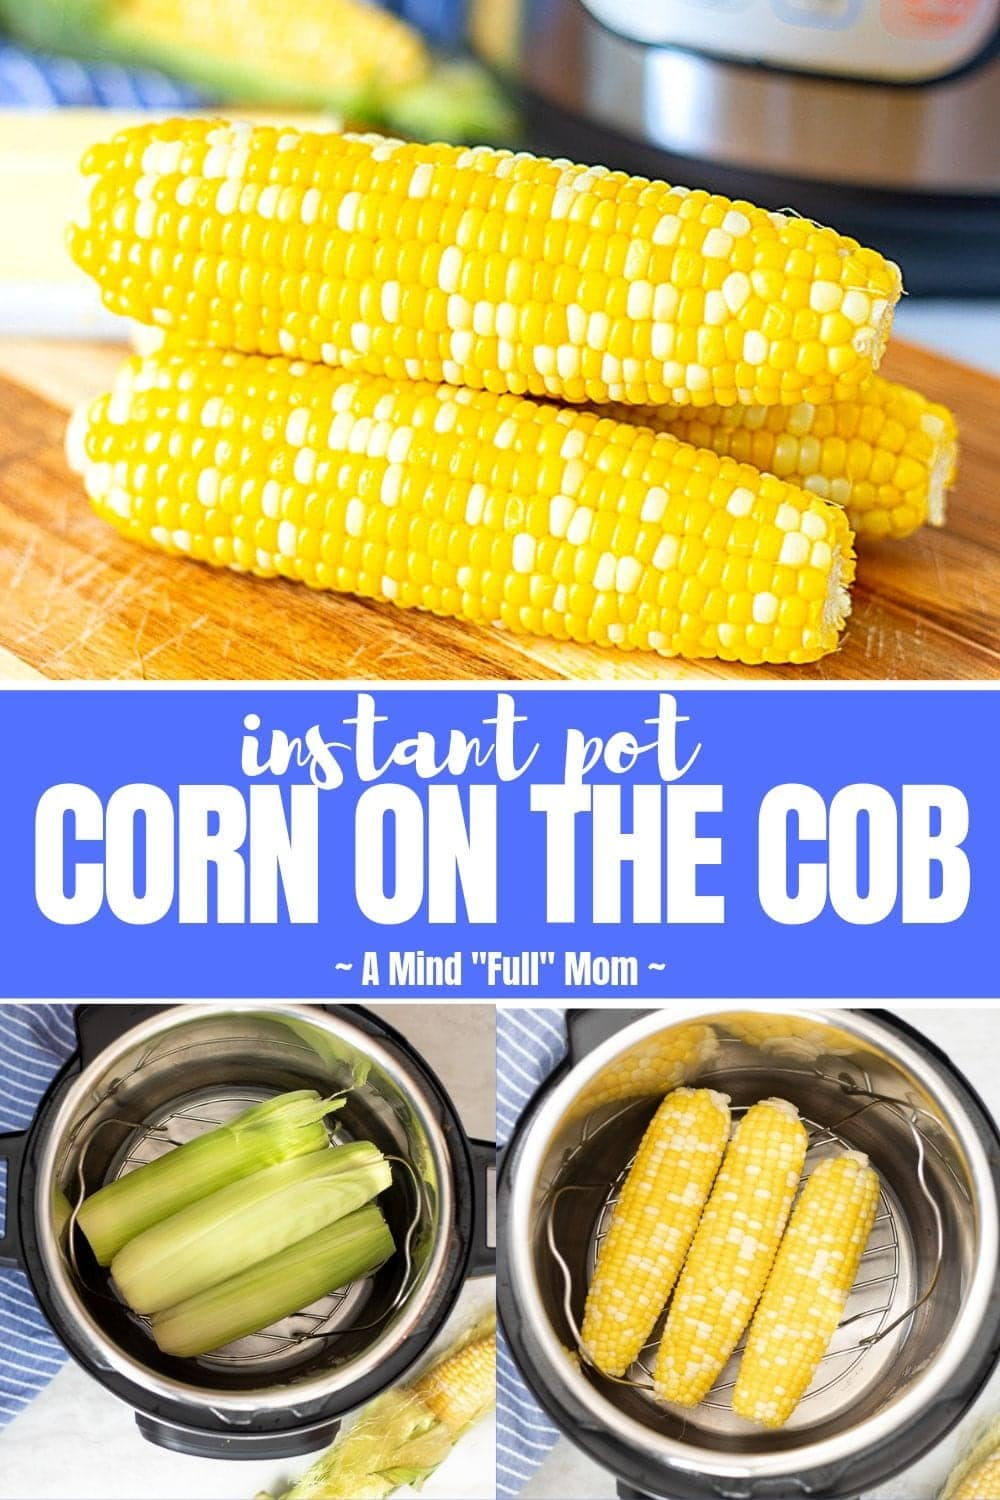 You will NEVER make corn on the cob any other way once you try out this Instant Pot Corn on the Cob! Instant Pot Corn on the Cob is the easiest way to make fresh corn on the cob with or without removing the husks! Preparing tender, juicy corn is easy, fast, hands-off, and fool-proof when you use the Instant Pot.